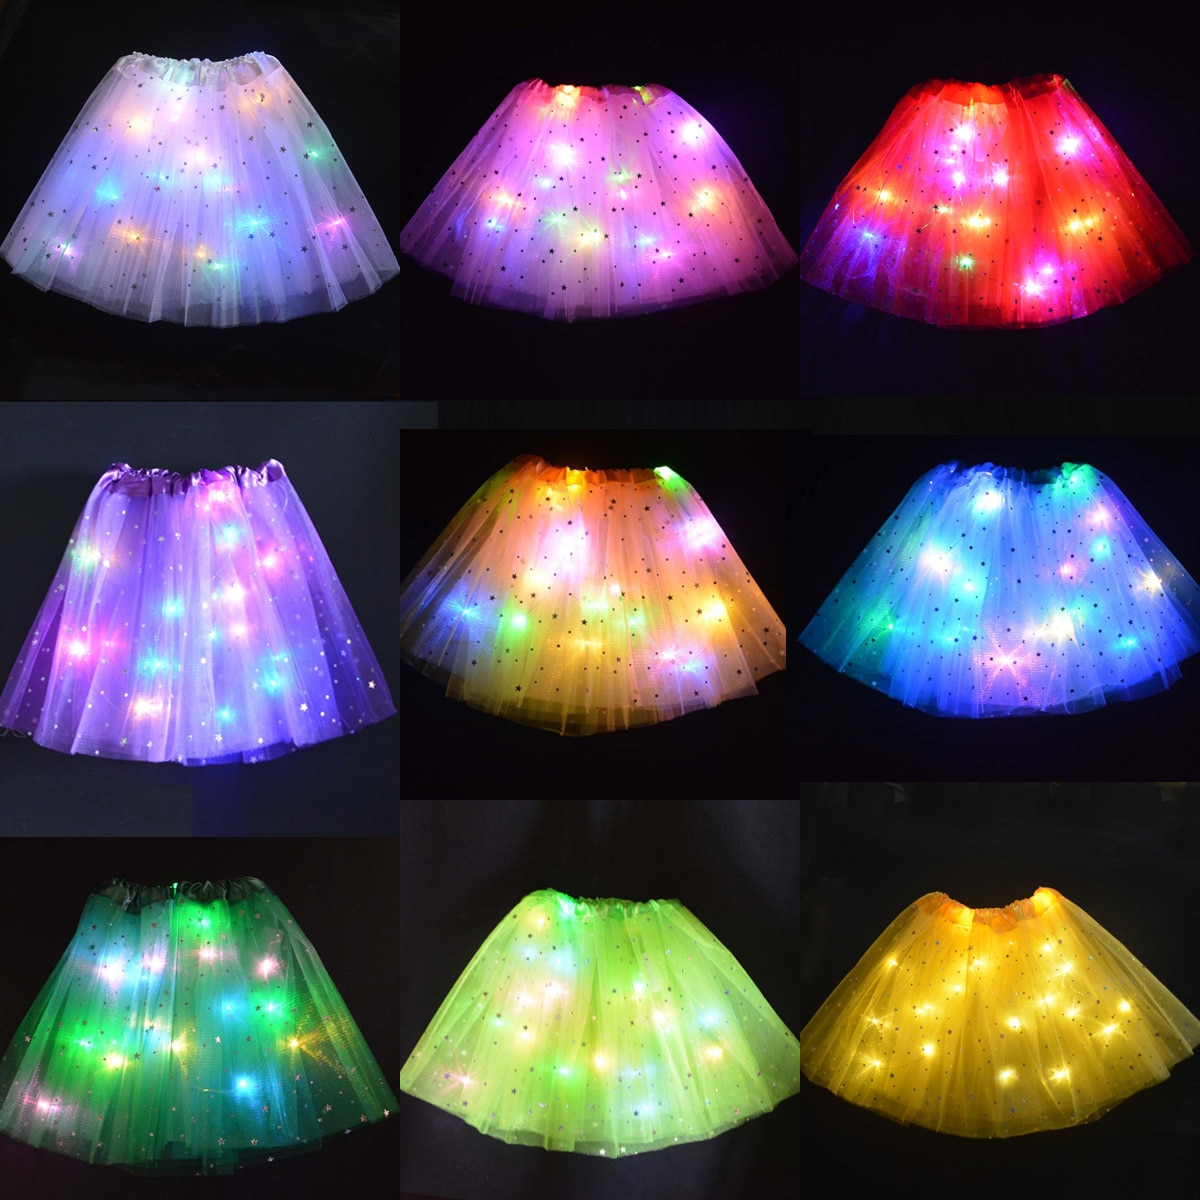 Flower Girl Kids Star LED Glowing Tutu Lighted Skirt Princess Party Tulle Pettiskirt Ballet Birthday Gift Costume Wedding Skirts